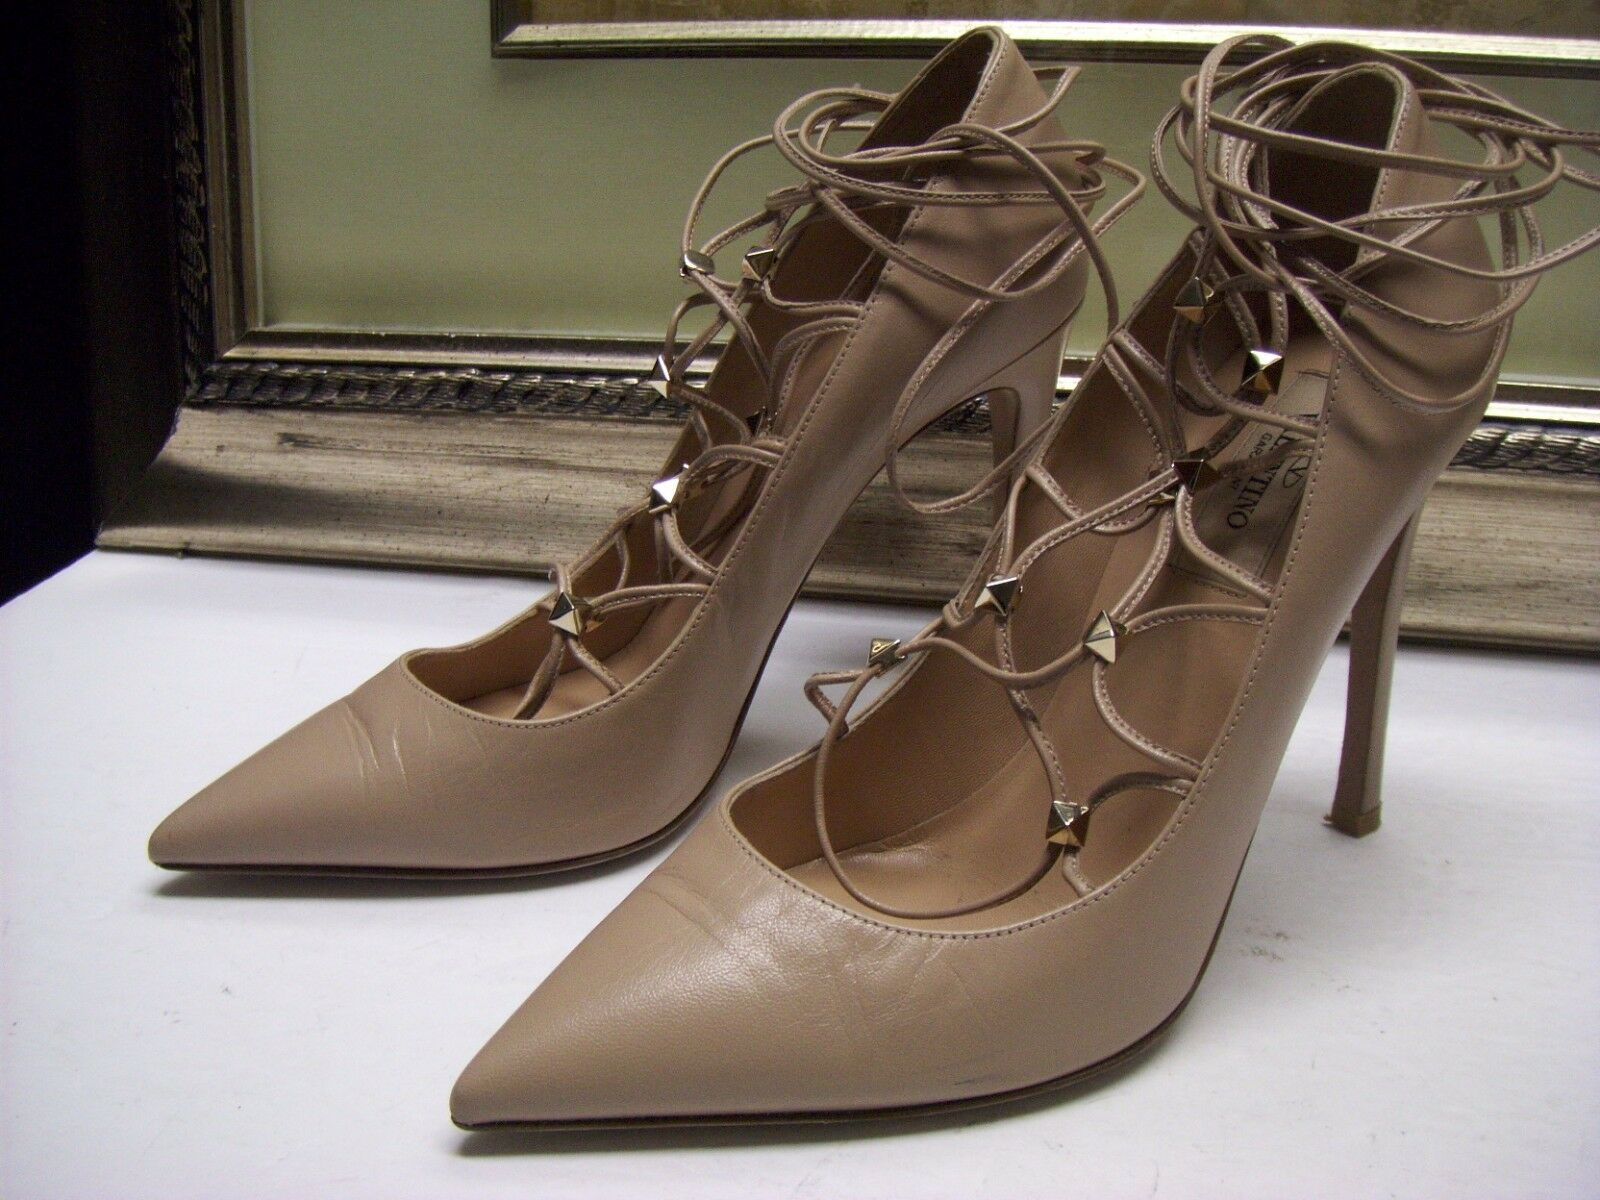 Authentic Valentino Rockstud Leather Lace-Up Pump Pump Pump chaussures Beige Couleur Taille 37  995 a1235a